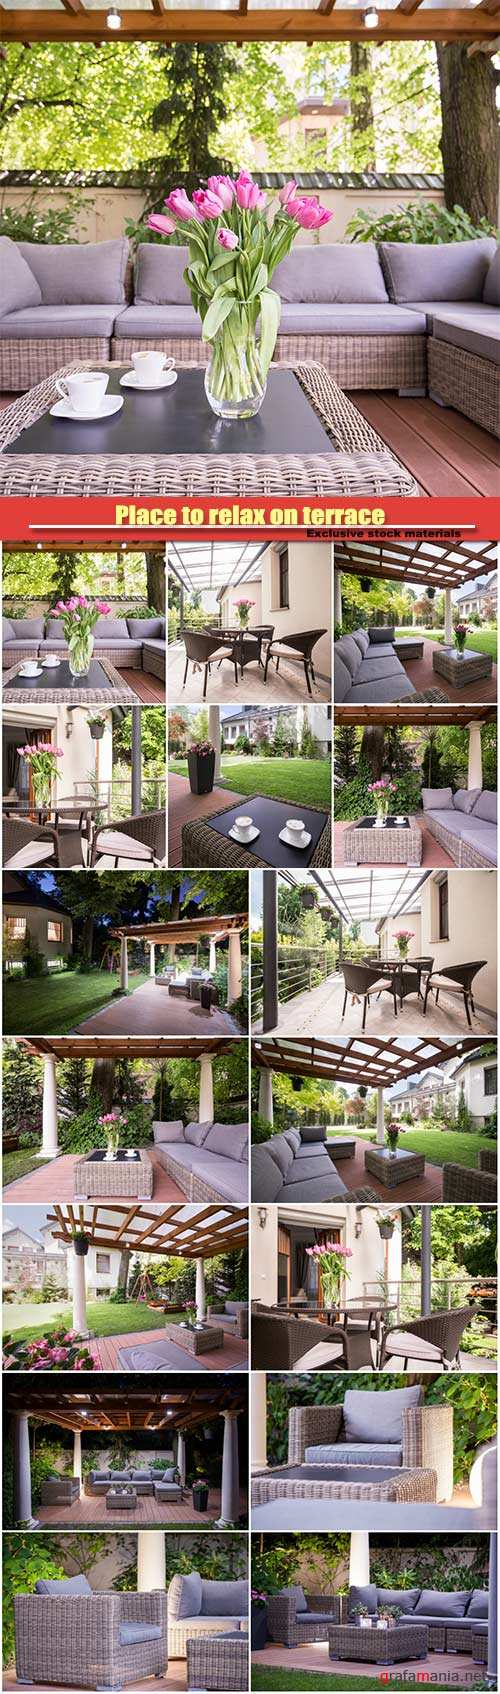 Place to relax on terrace, elegant rattan garden furnitures